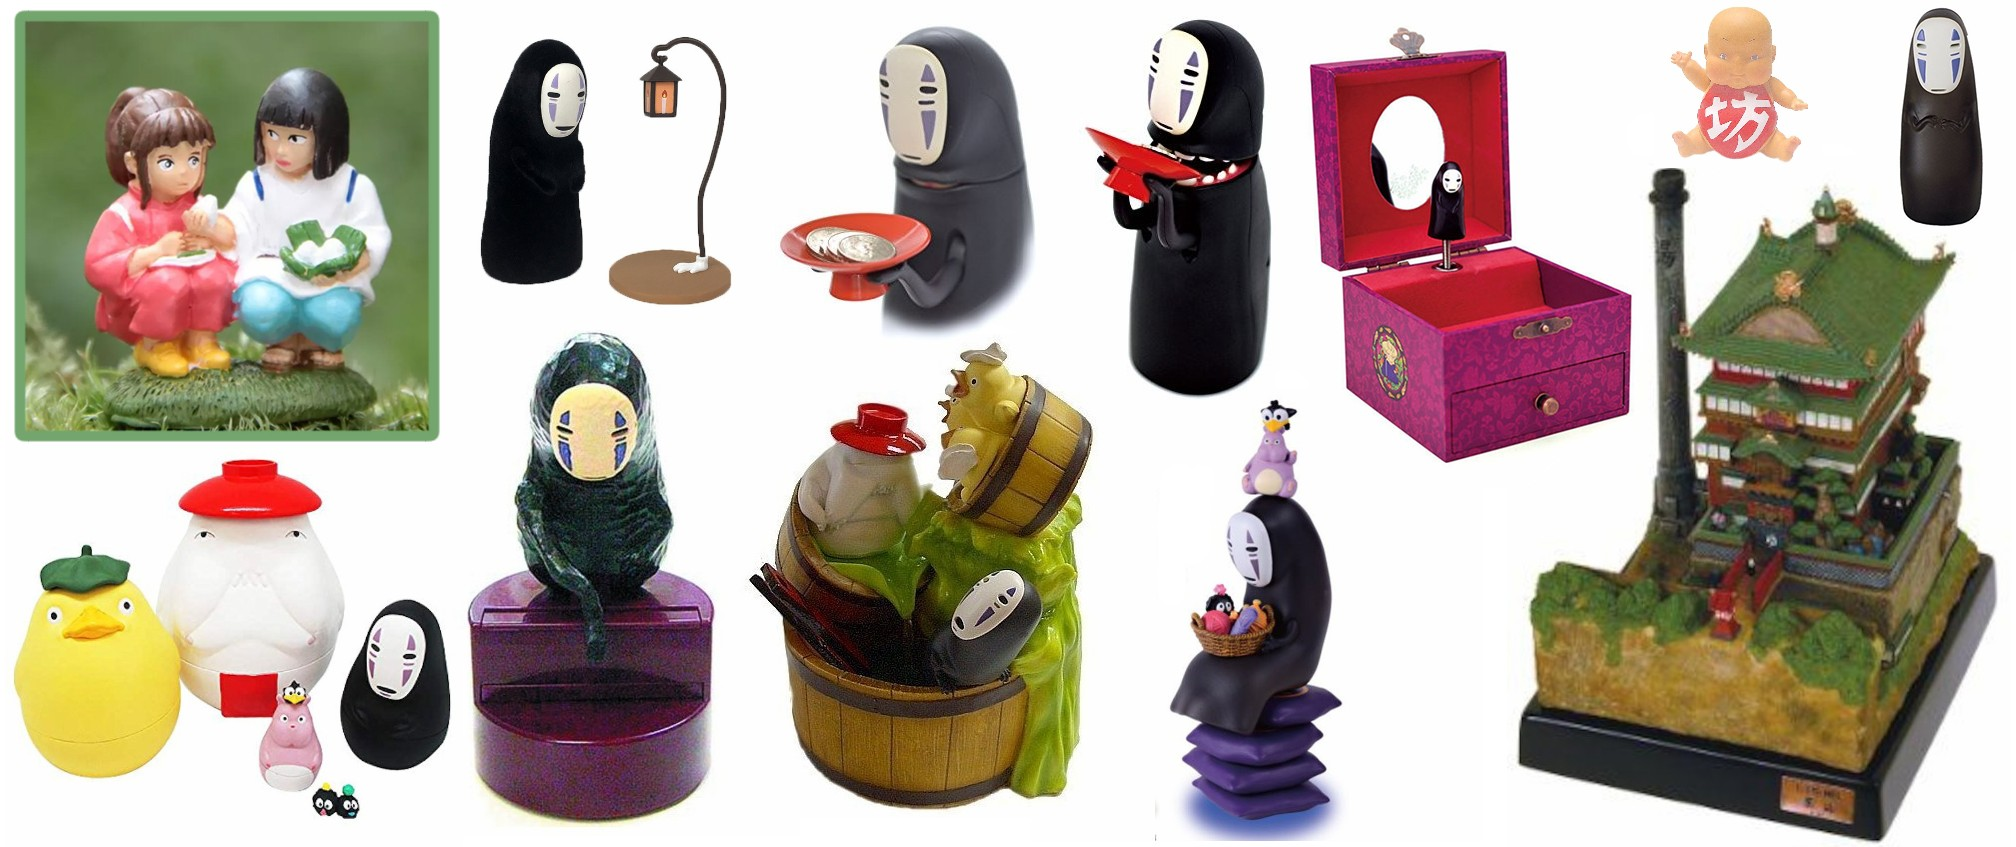 Spirited Away Figurines